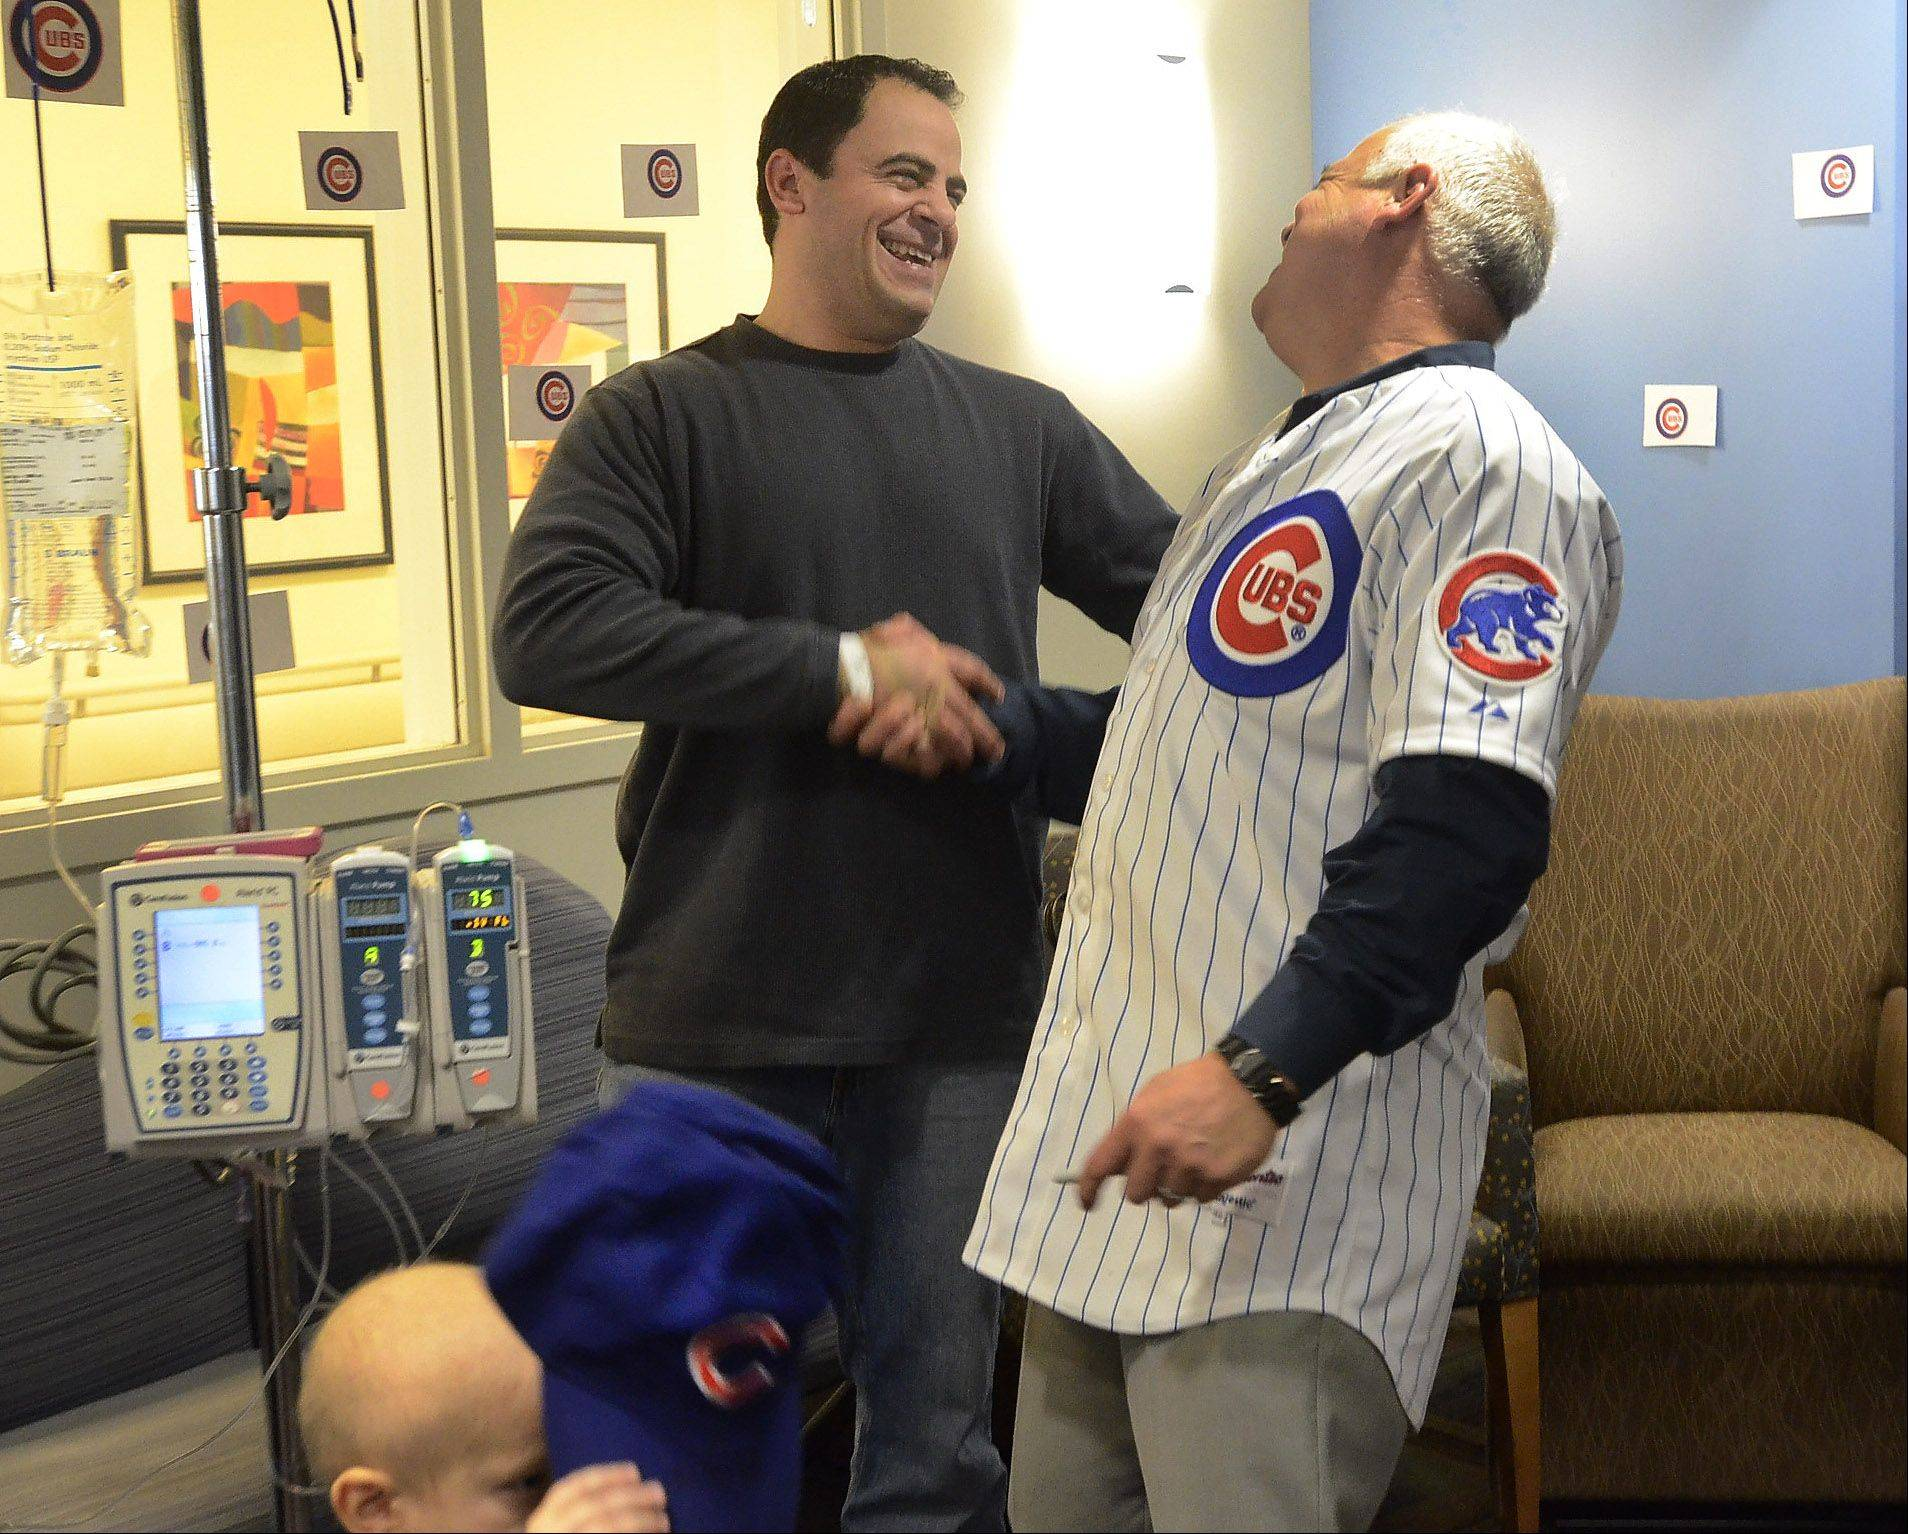 Sergio Filice of Melrose Park, the father of one of the patients, shares a moment with new Cubs manager Rick Renteria.